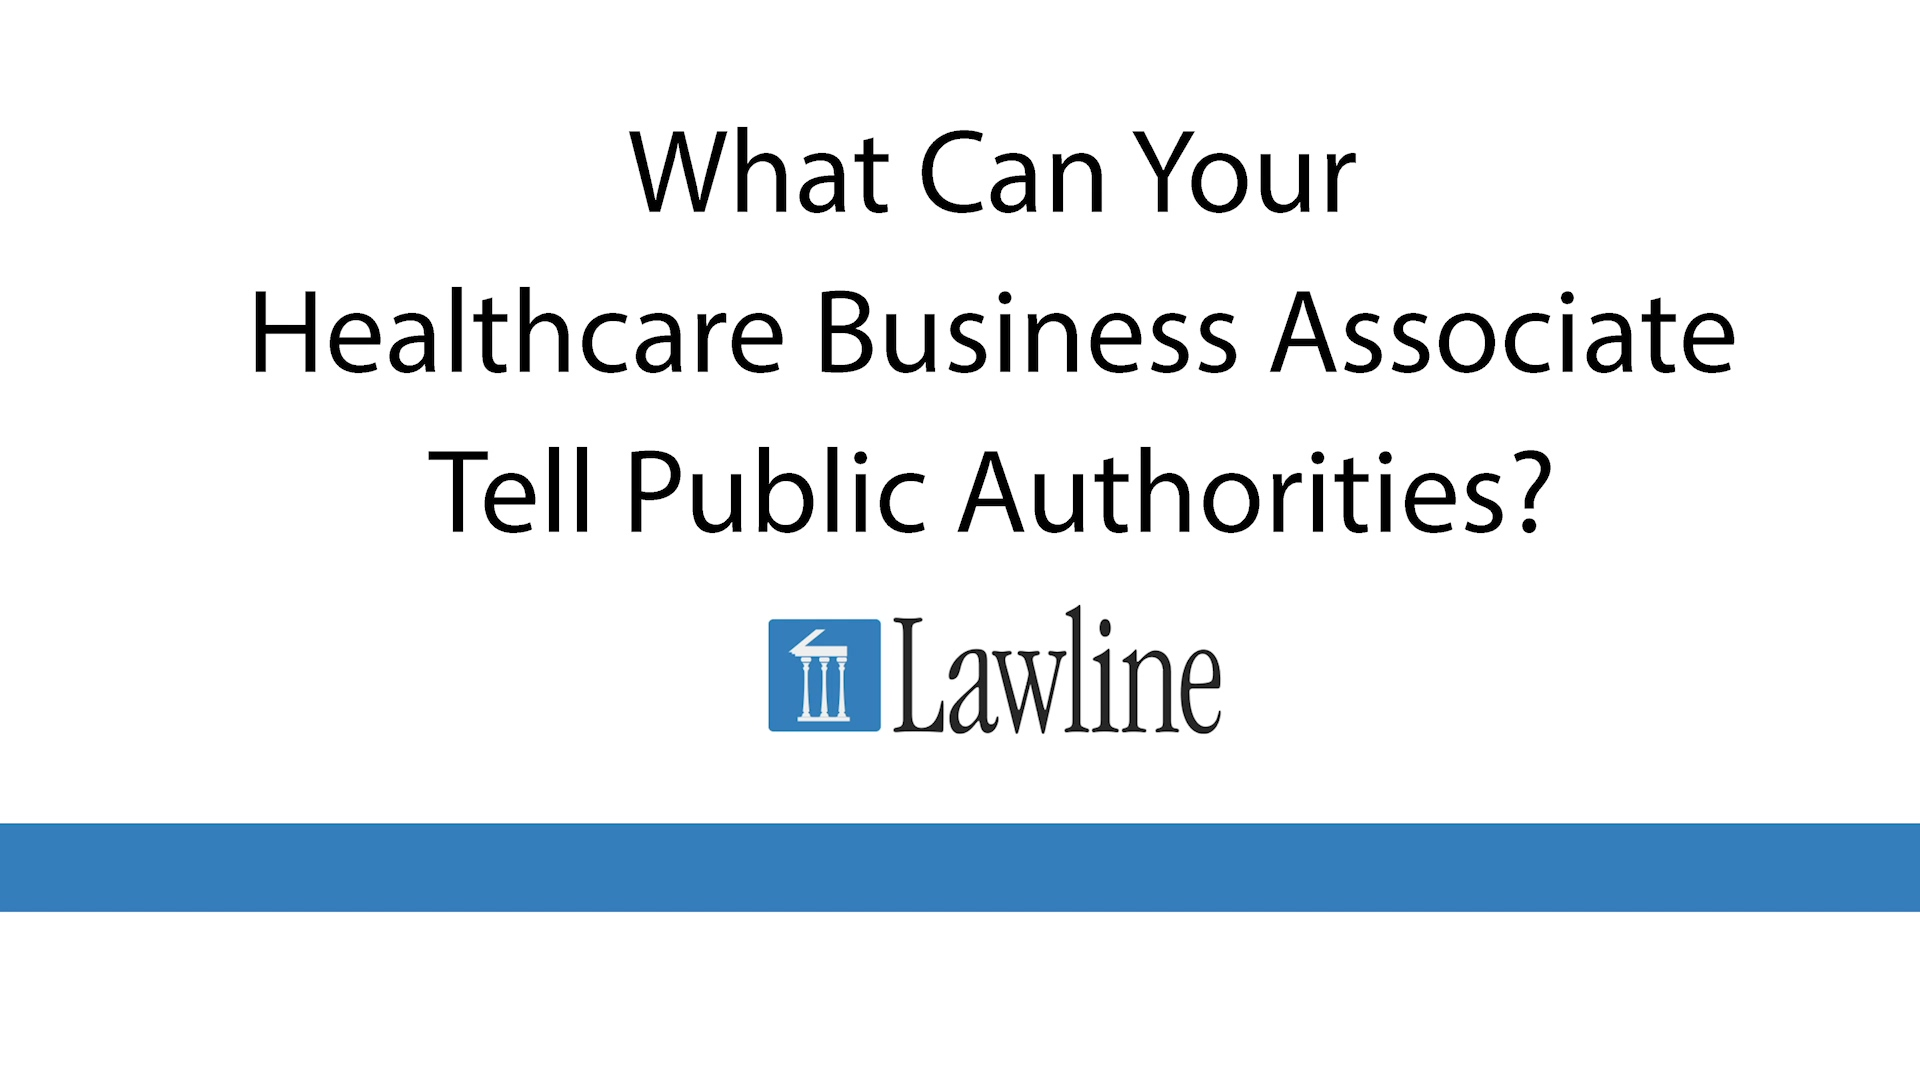 What Can Your Healthcare Business Associate Tell Public Authorities EDITED